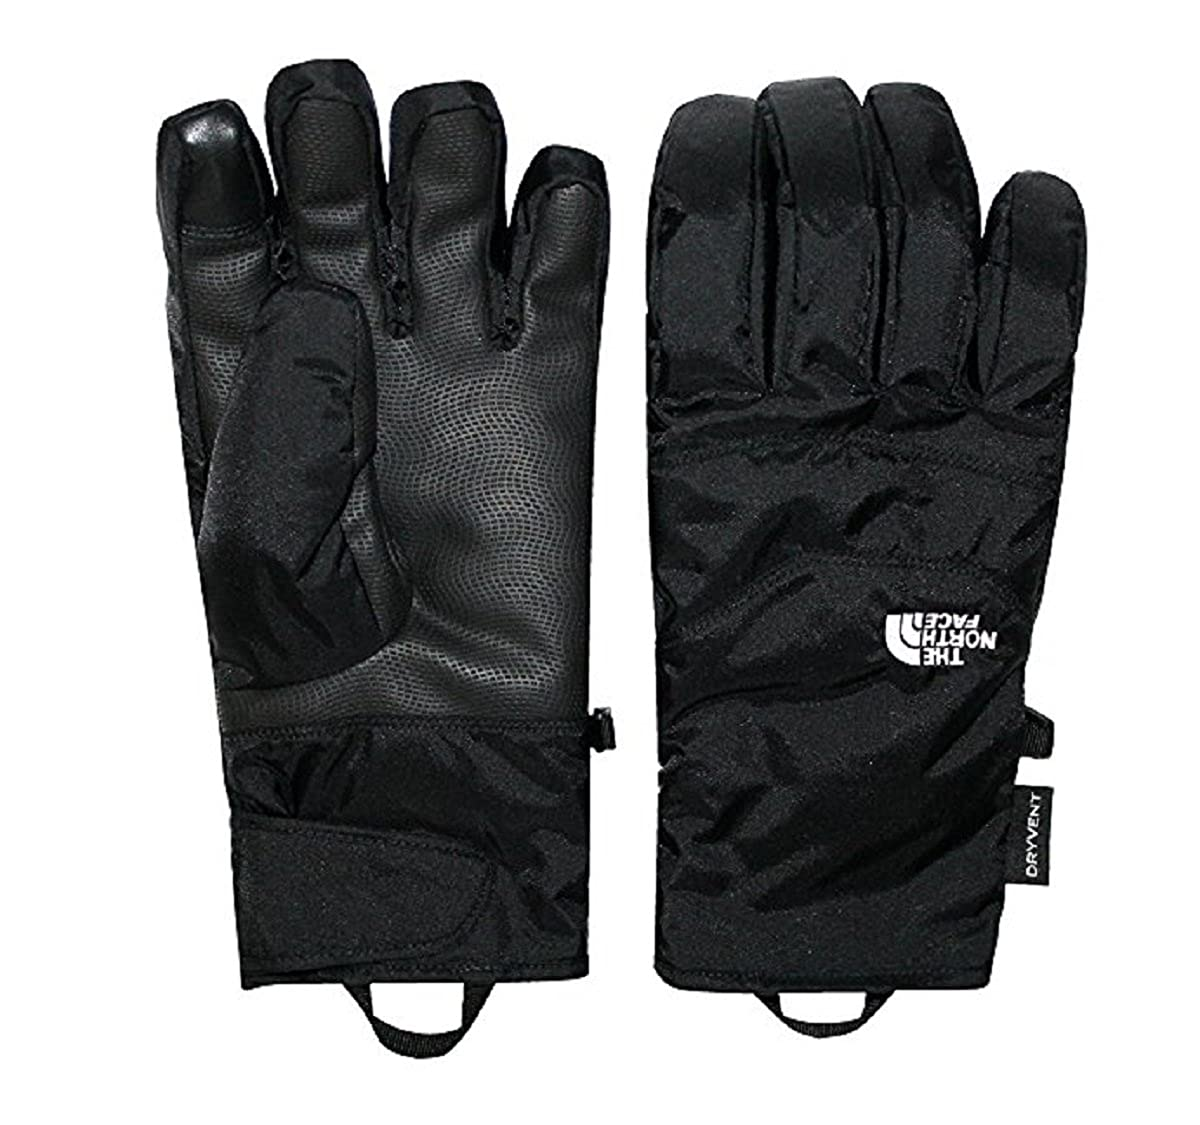 d5990593d Amazon.com: The North Face Women's Waterproof Winter Gloves (SMALL ...